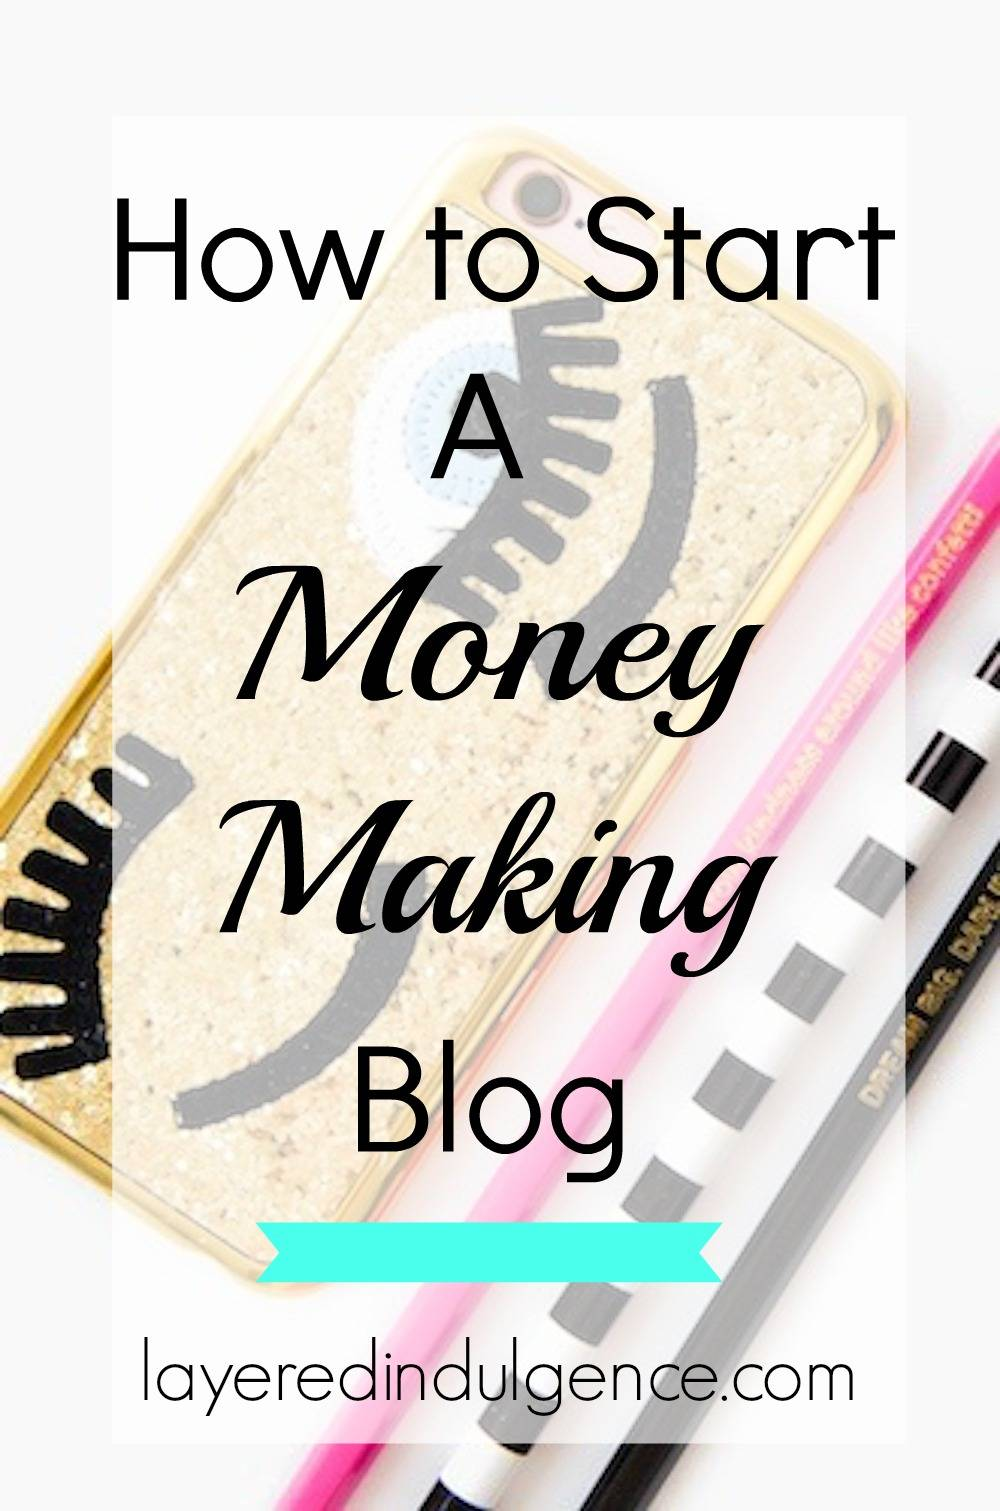 Have you ever wanted to start a blog? How about a blog that can make you money? If you want to work from home, make passive income, and create your dream empire with a blog, check out my guide on how to make money blogging. I'm dishing out my best tips for beginners, and showing you everything I've learned throughout my blogging journey! Click through to read the post now or save this pin for later!